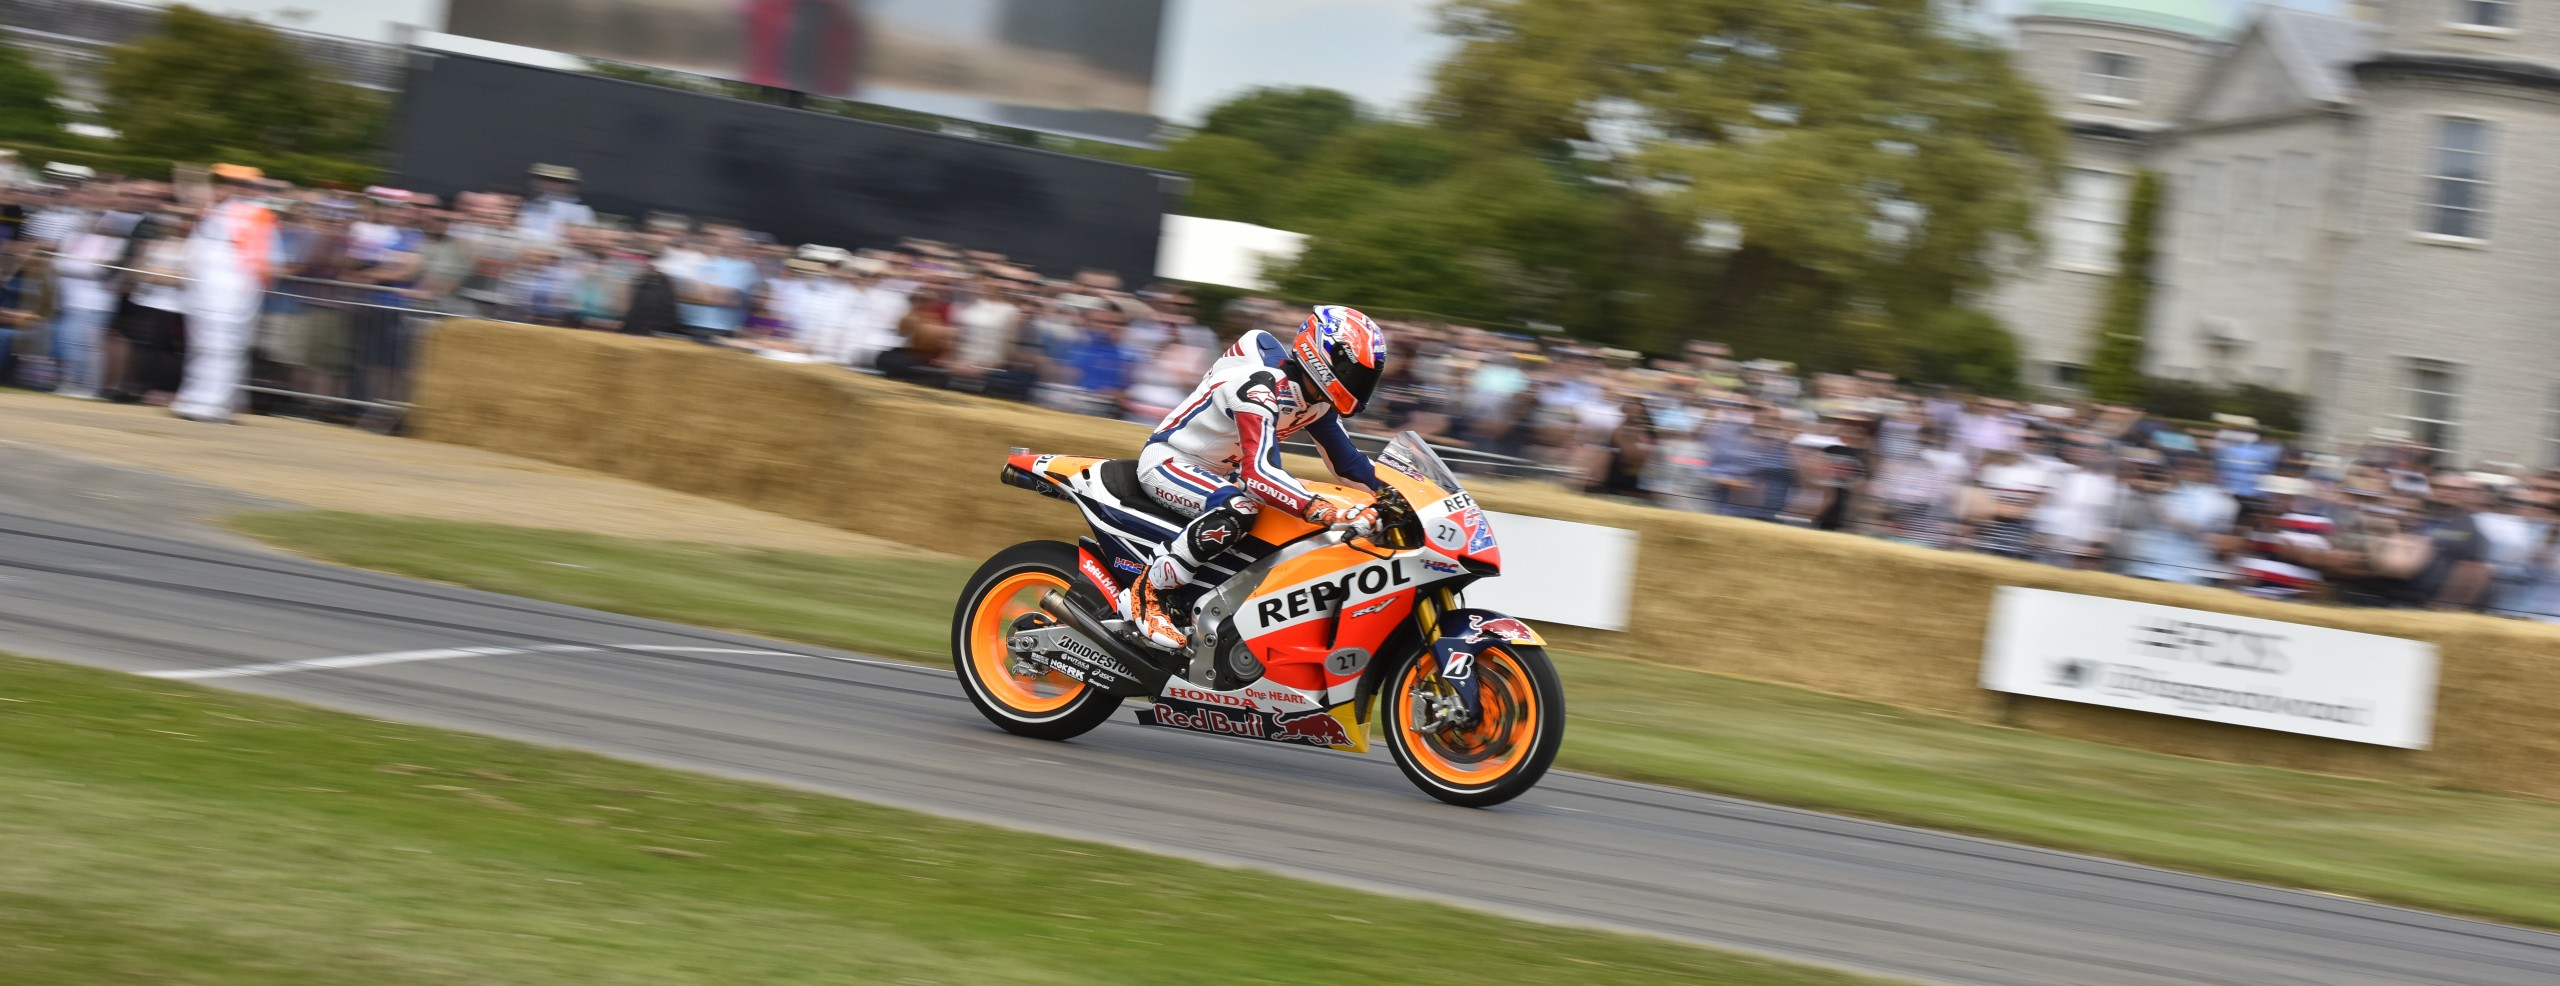 Honda Racing Corporation attends Goodwood Festival of Speed